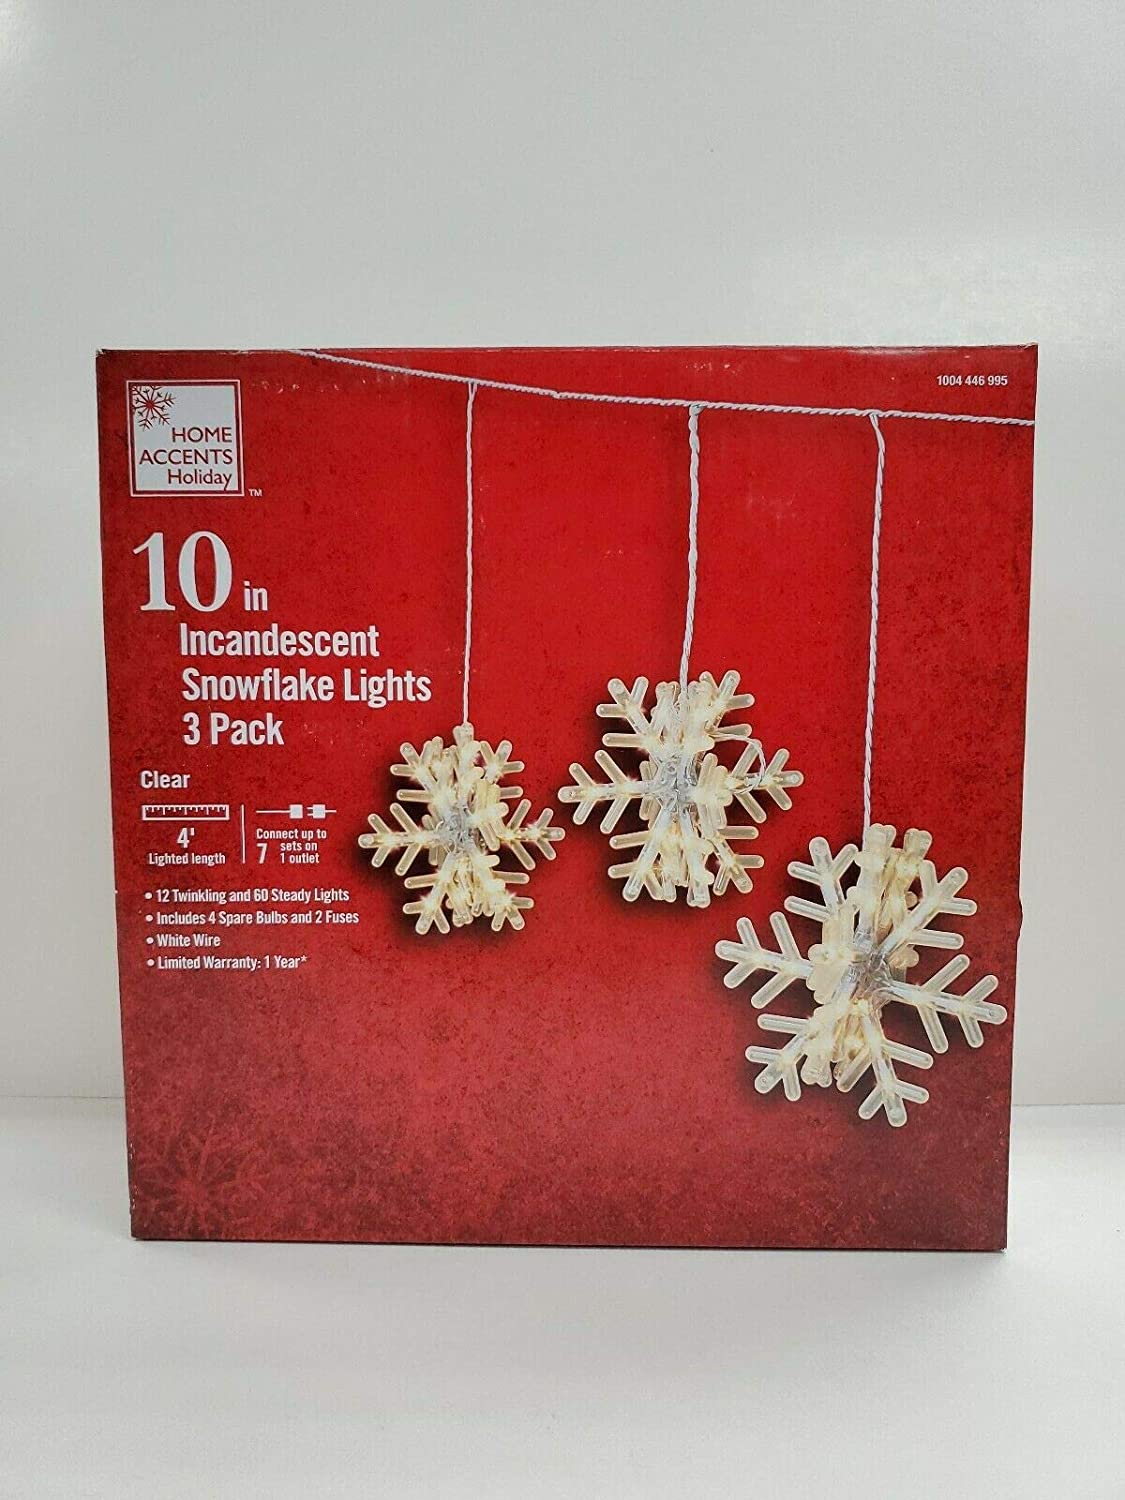 Home Accents Holiday 10 in Incandescent Snowflake Lights - 3 Pack Clear (1 Box)